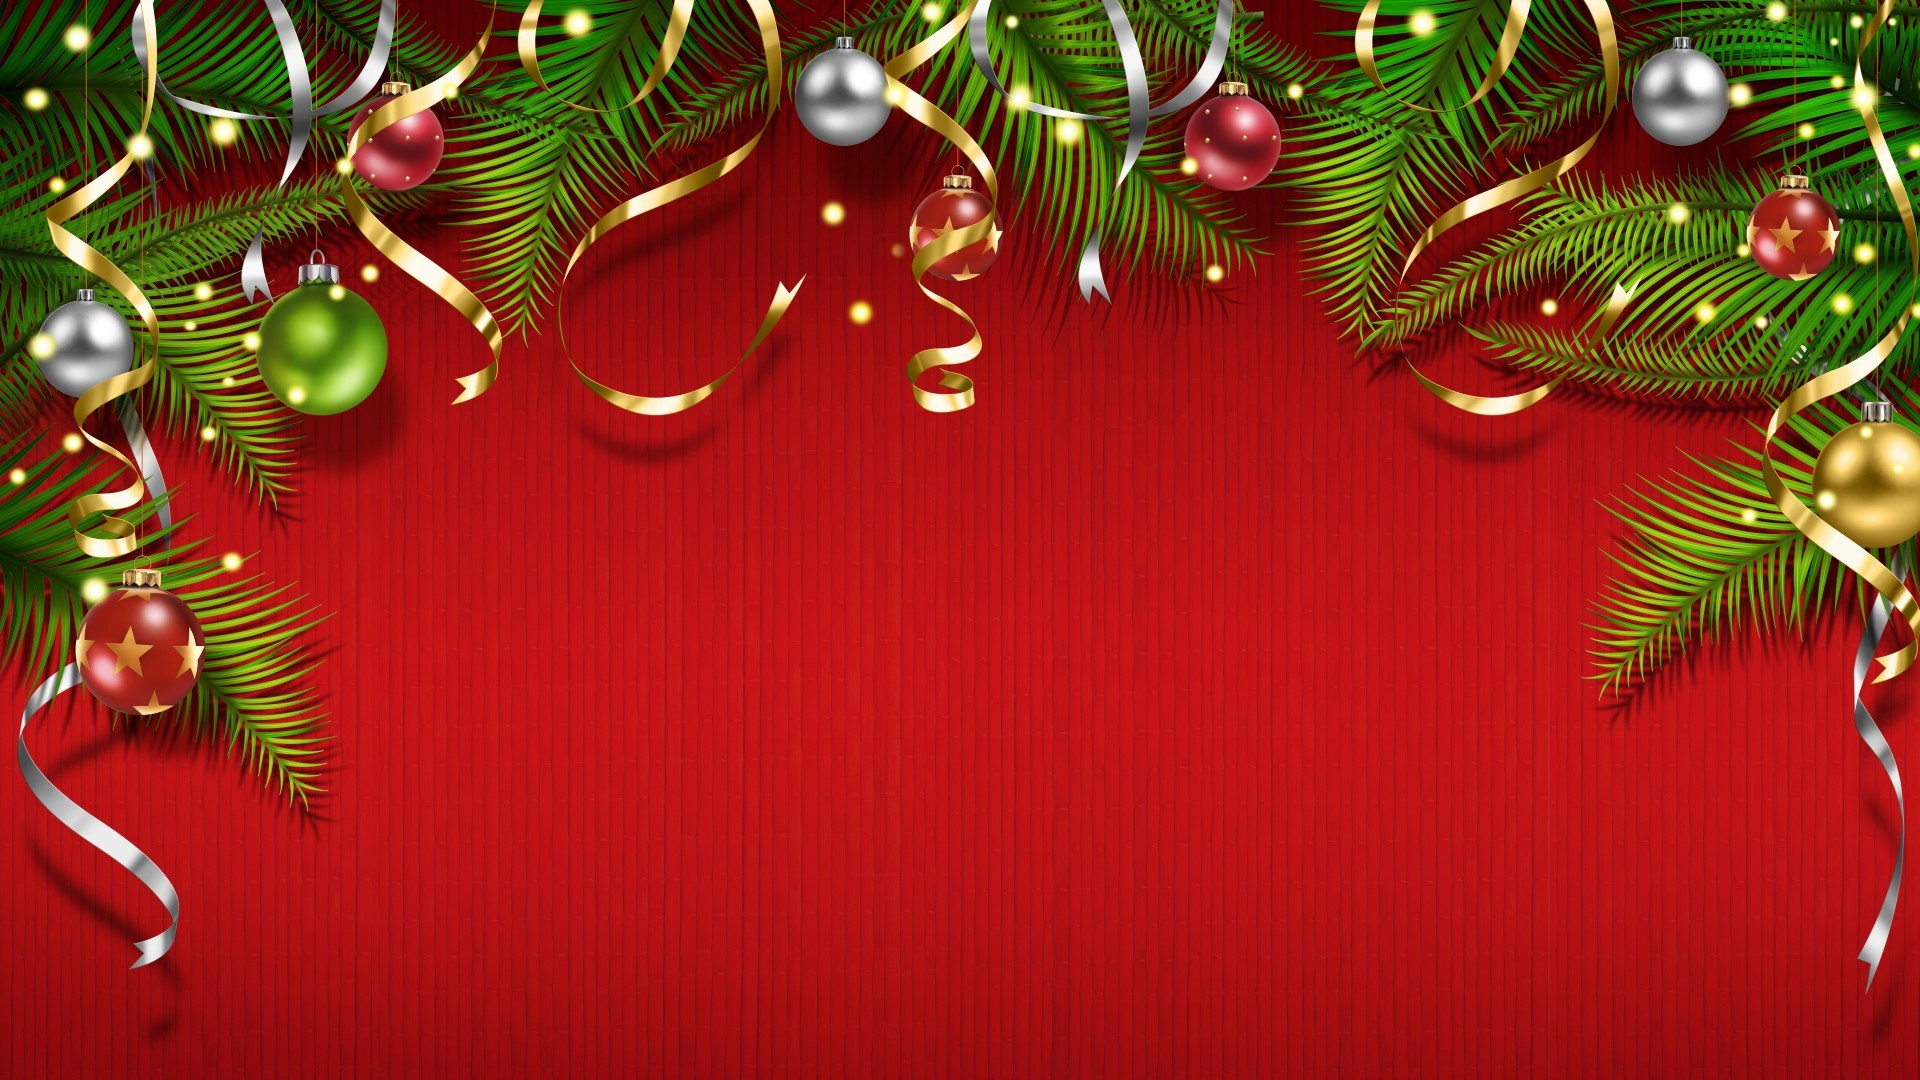 1920x1080 - Wallpaper for Christmas 41